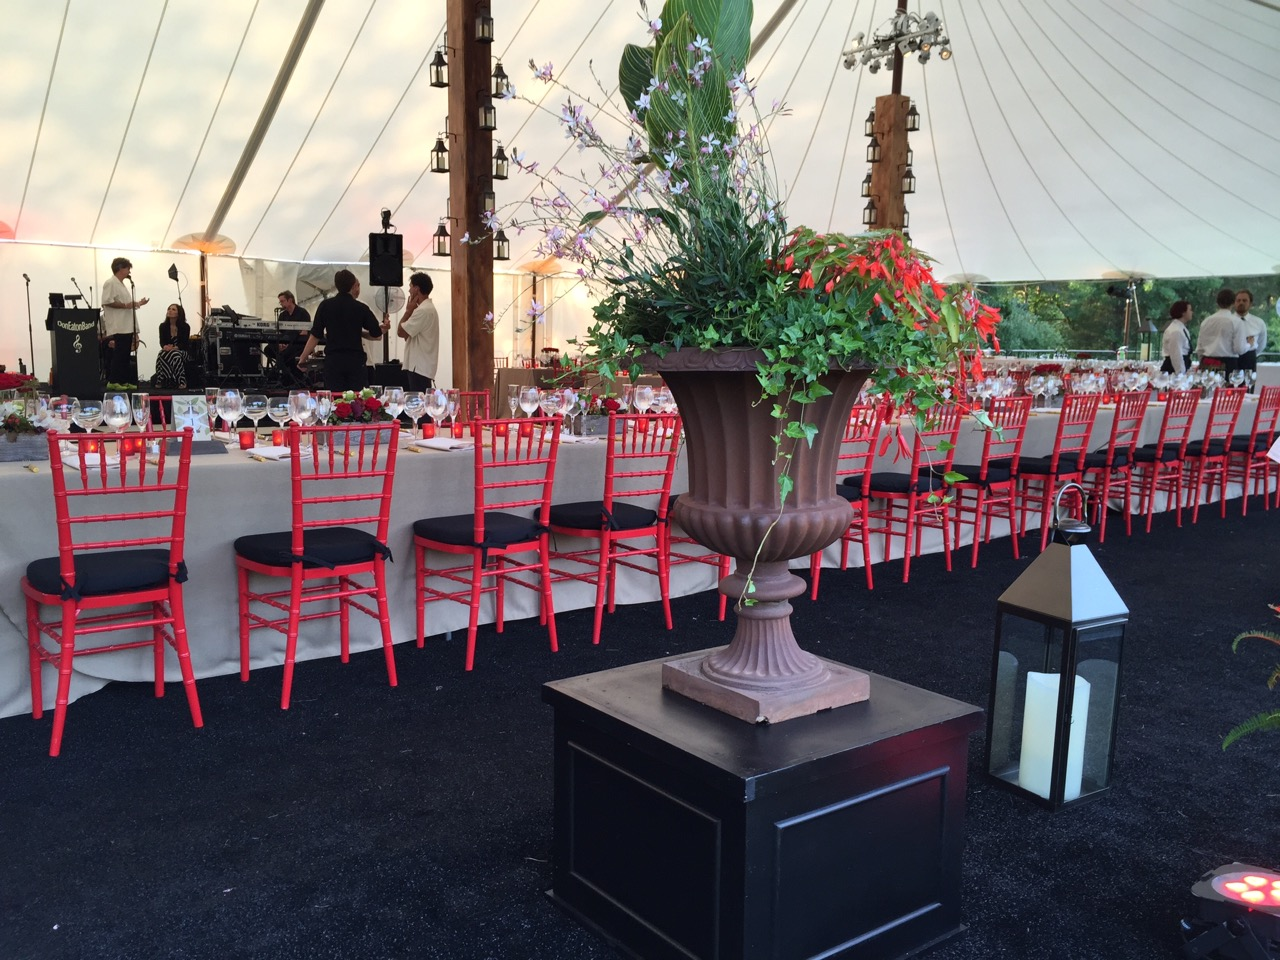 Large floor lanterns, entryway urns with live flowers and foliage, and the long head table